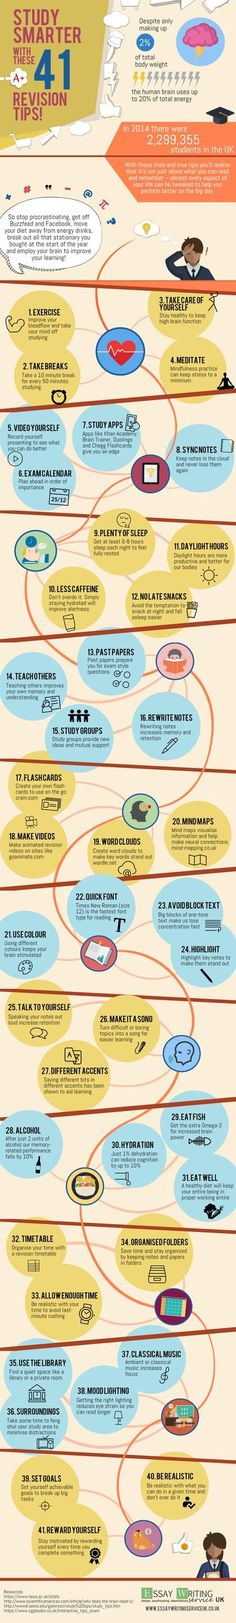 41 Revision Tips to Study Smarter Infographic - http://elearninginfographics.com/41-revision-tips-study-smarter-infographic/